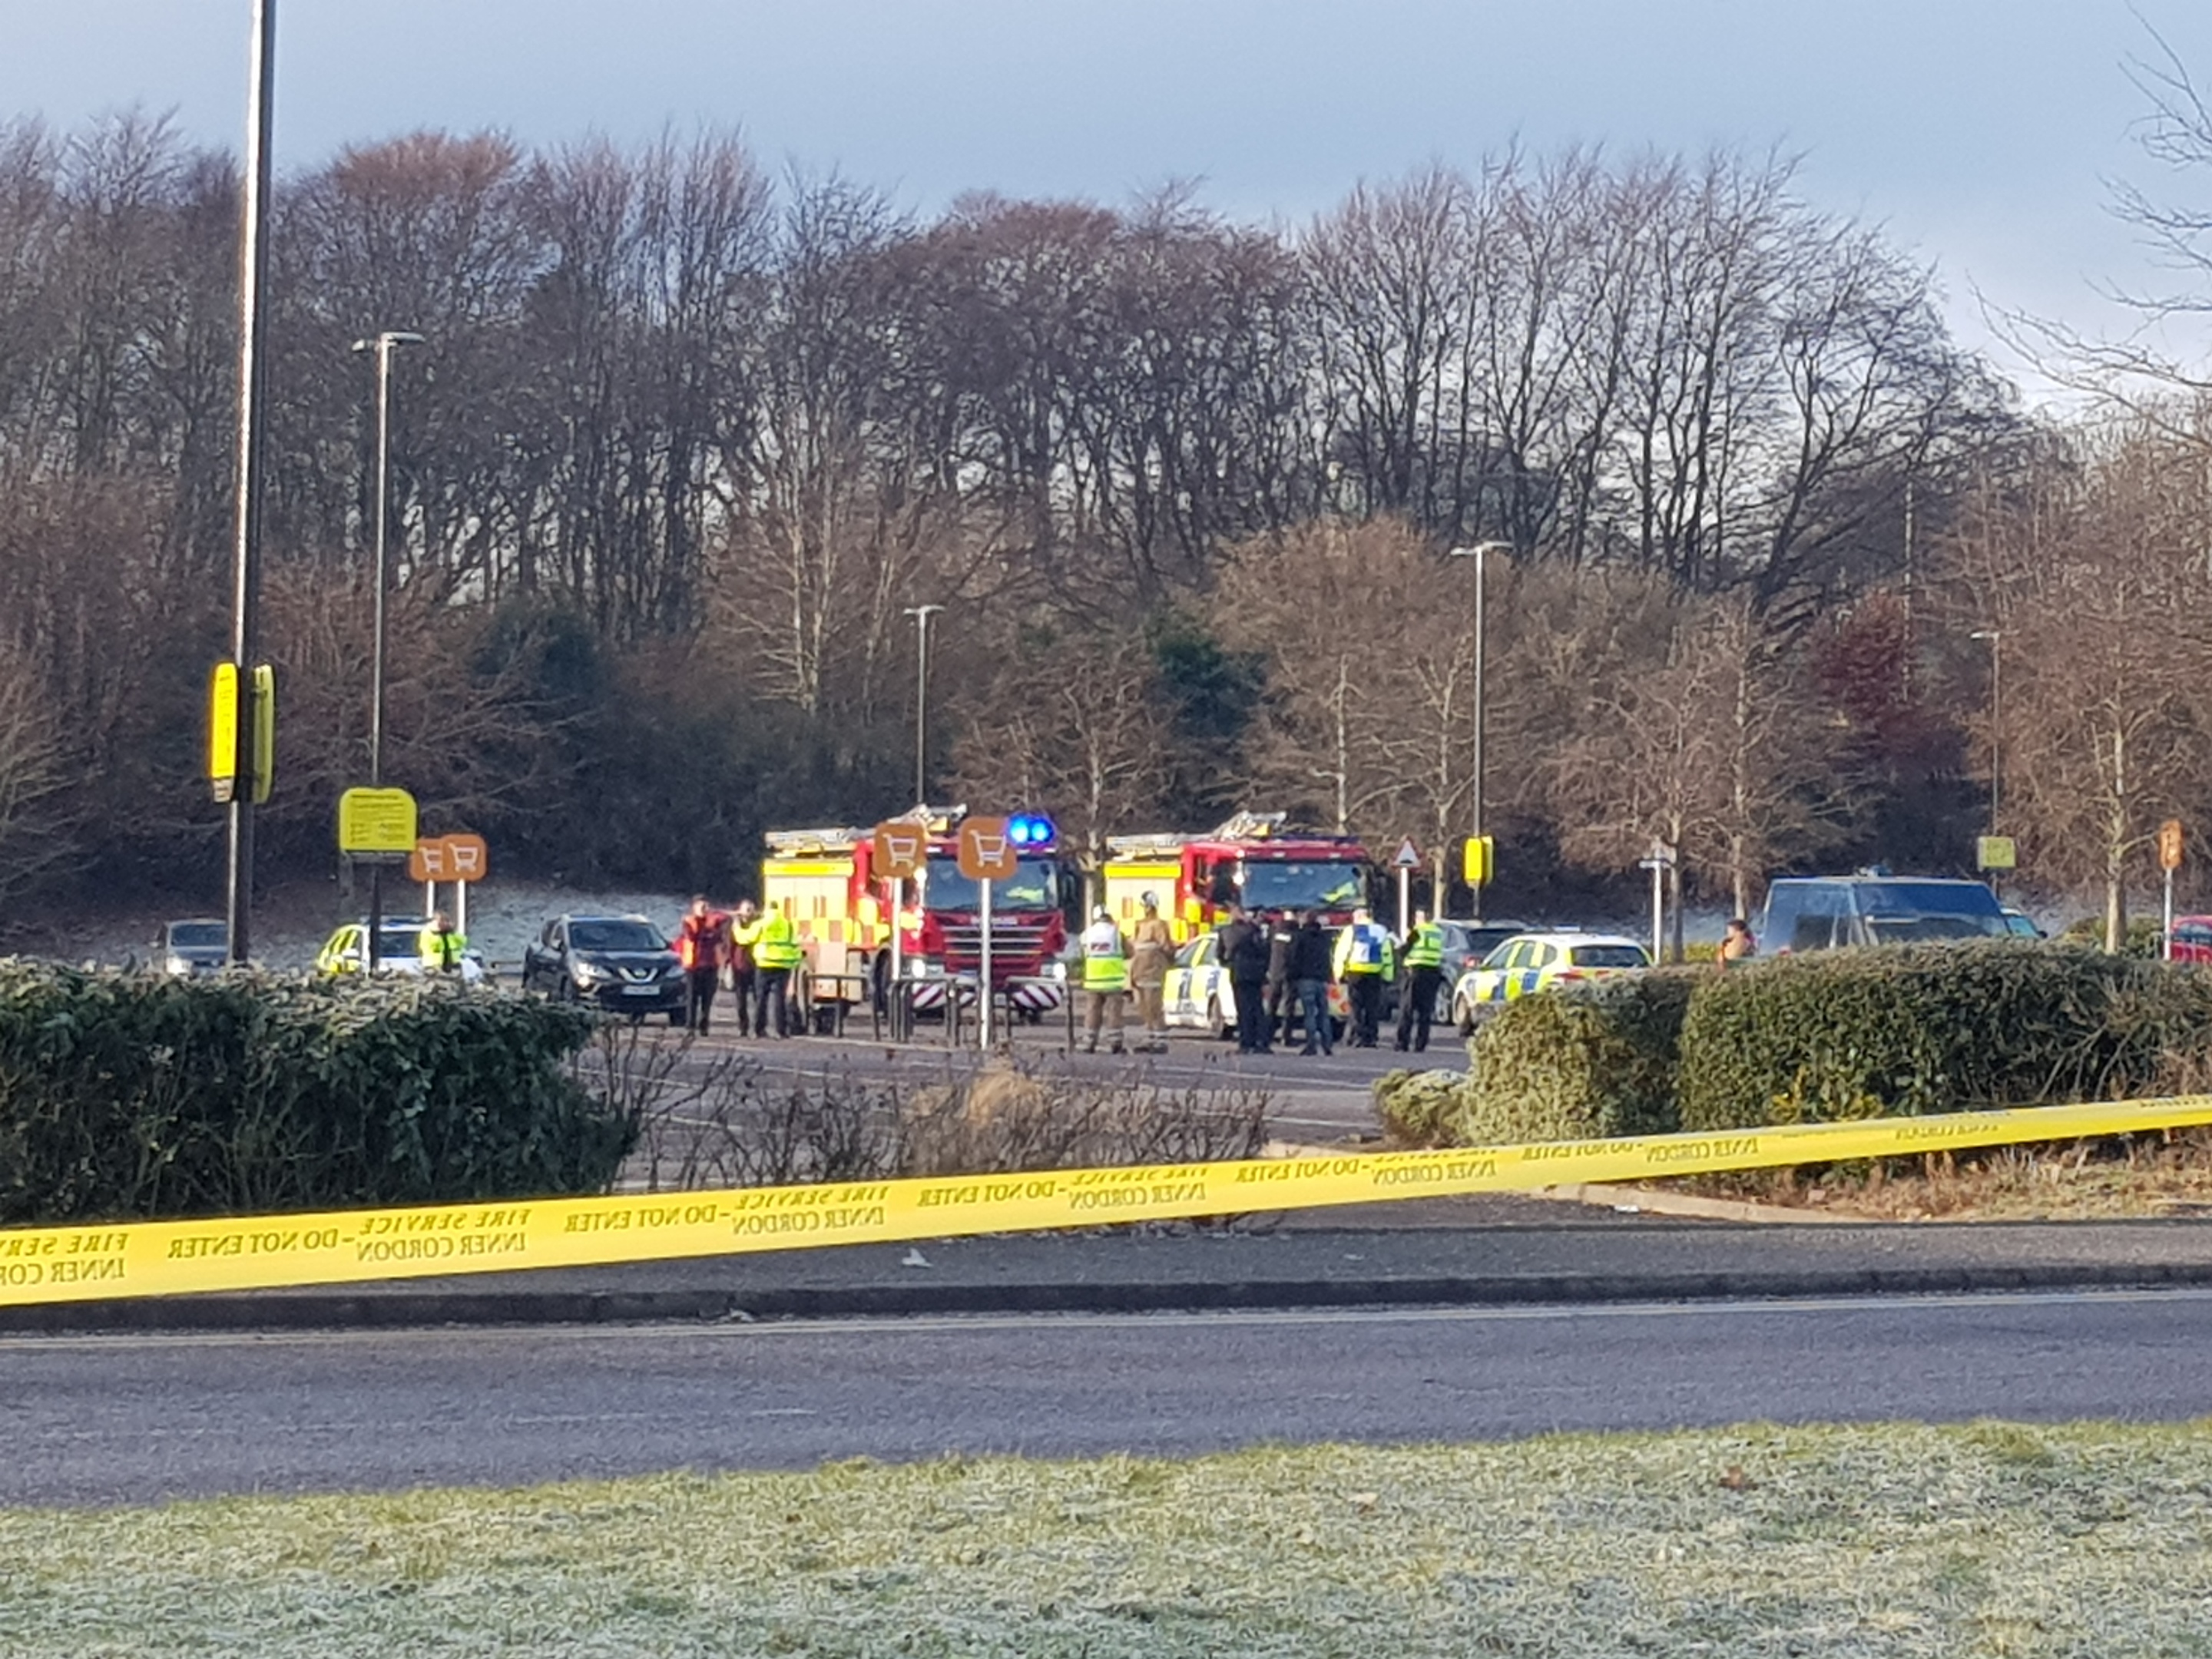 Emergency services were called to Sainsbury's at Garthdee after a shop worker found a suspicious package.